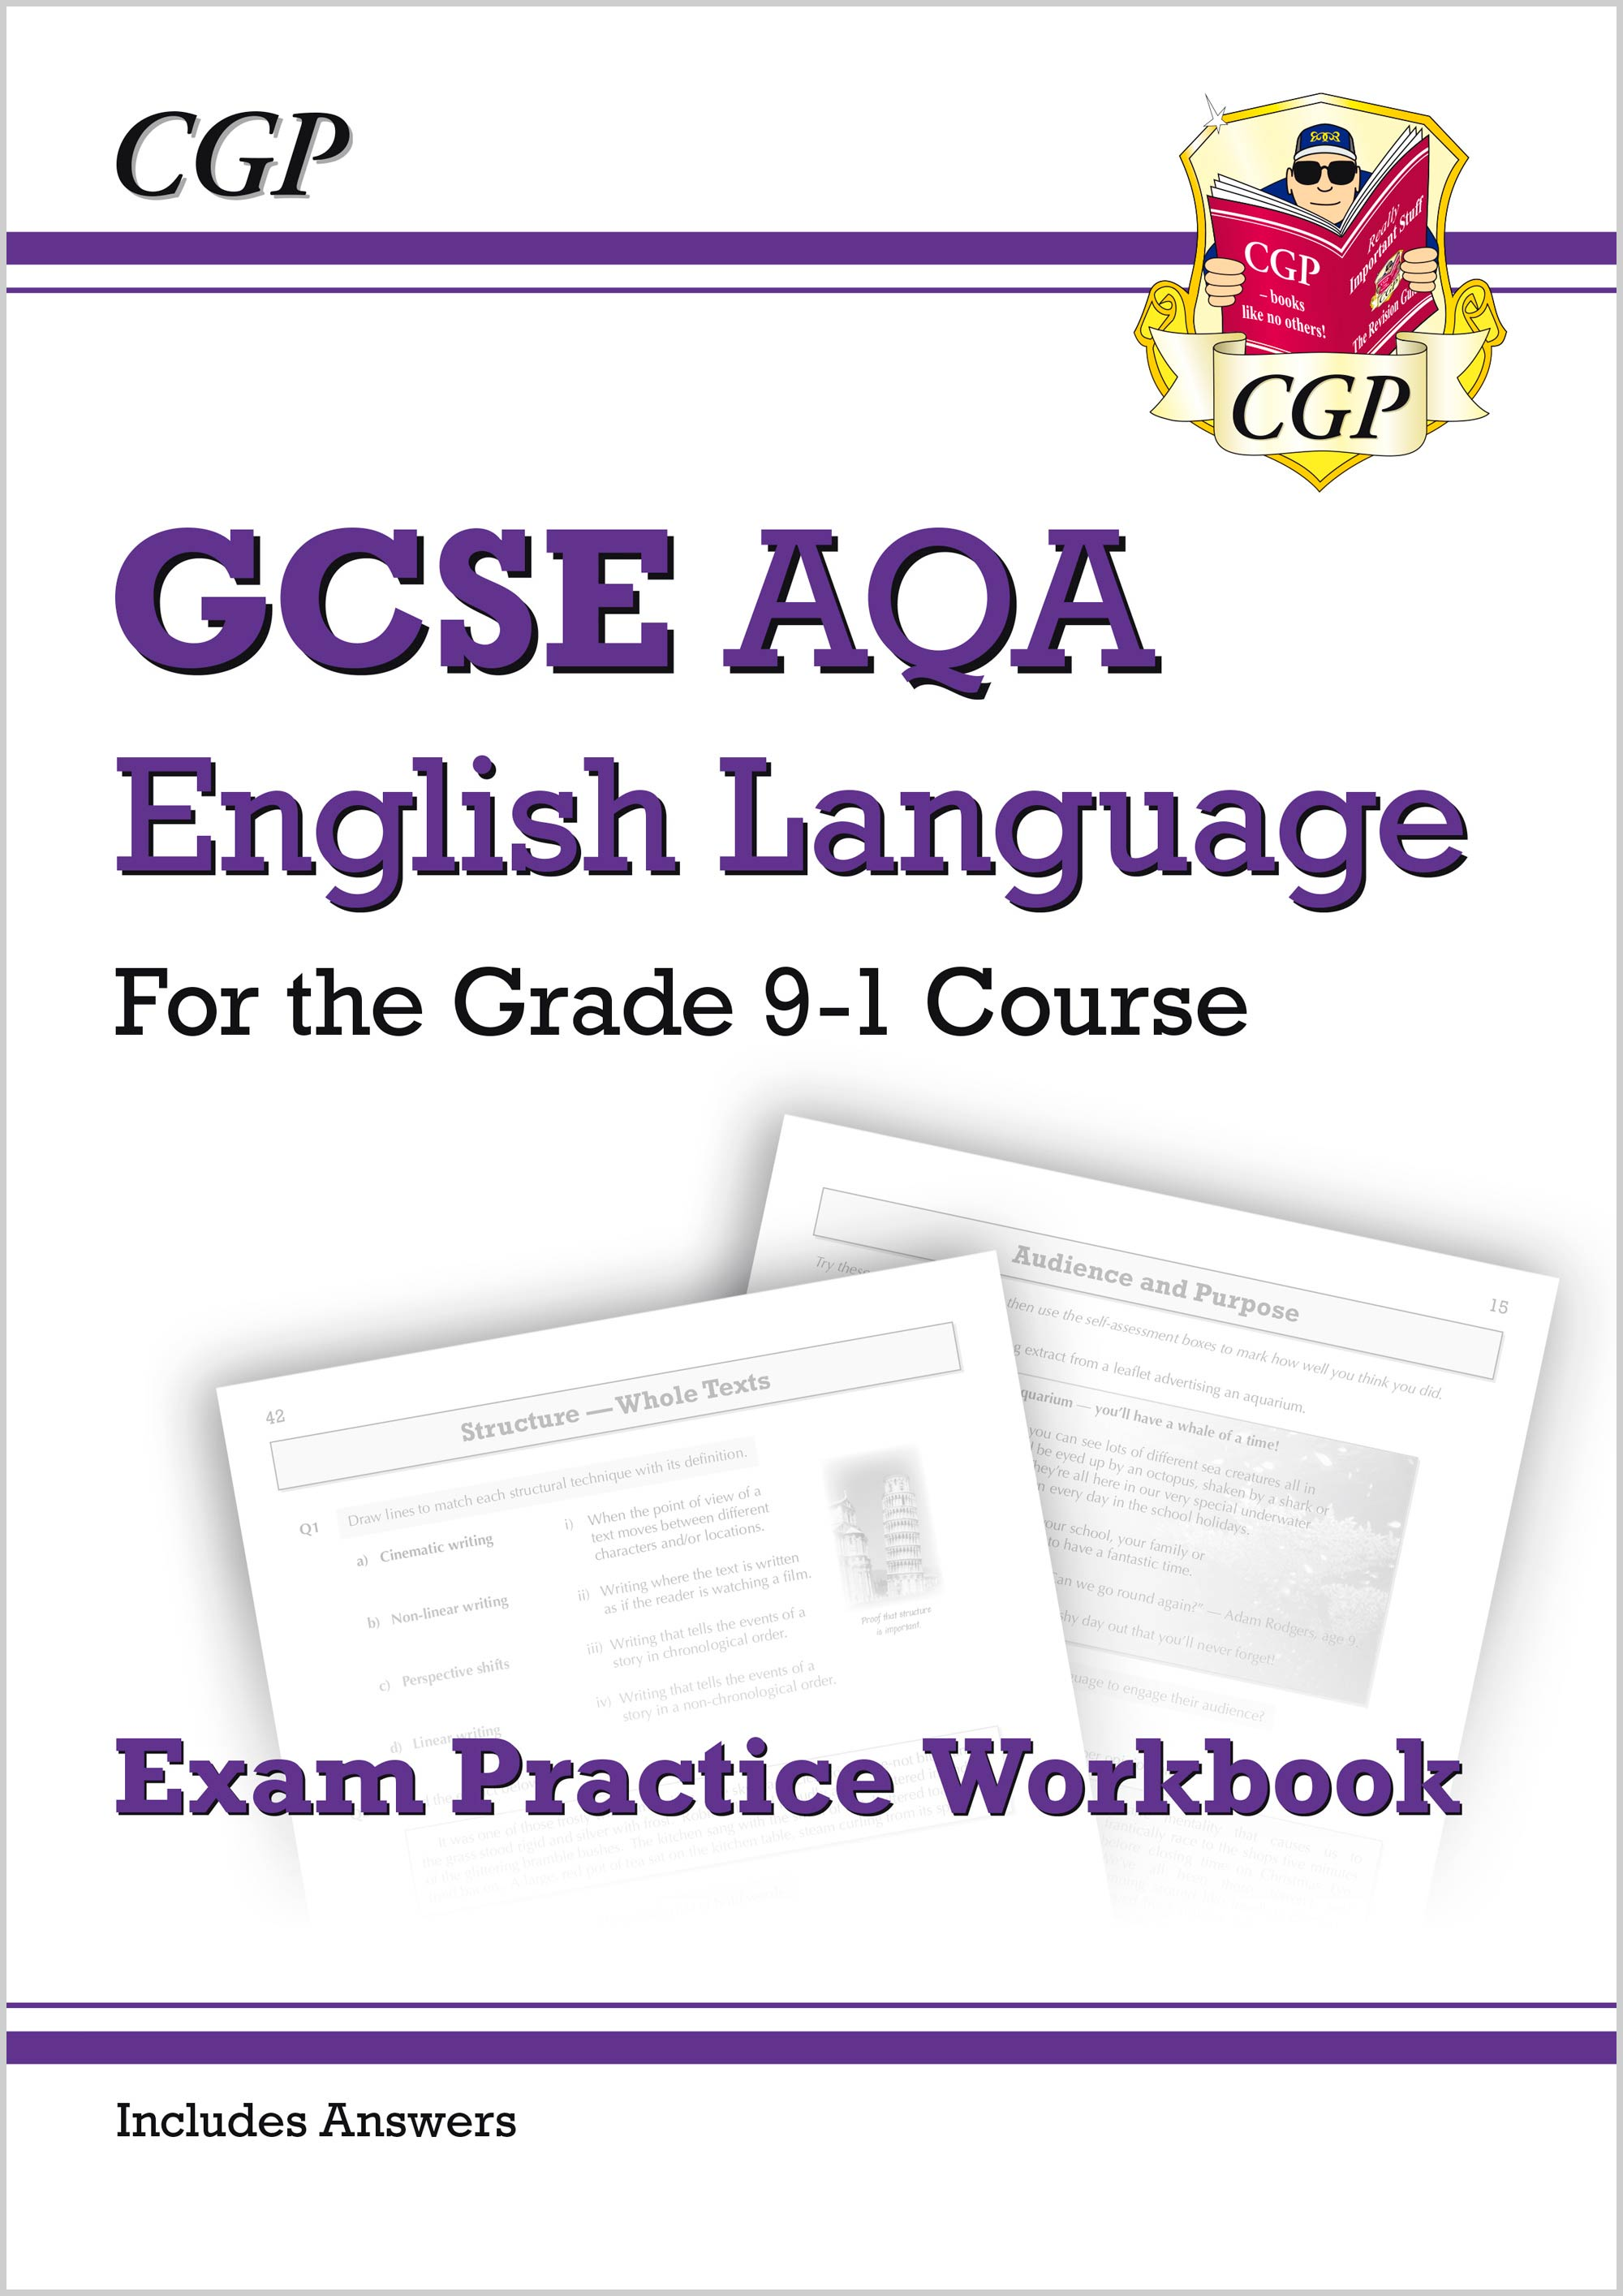 ENAW41 - GCSE English Language AQA Workbook - for the Grade 9-1 Course (includes Answers)